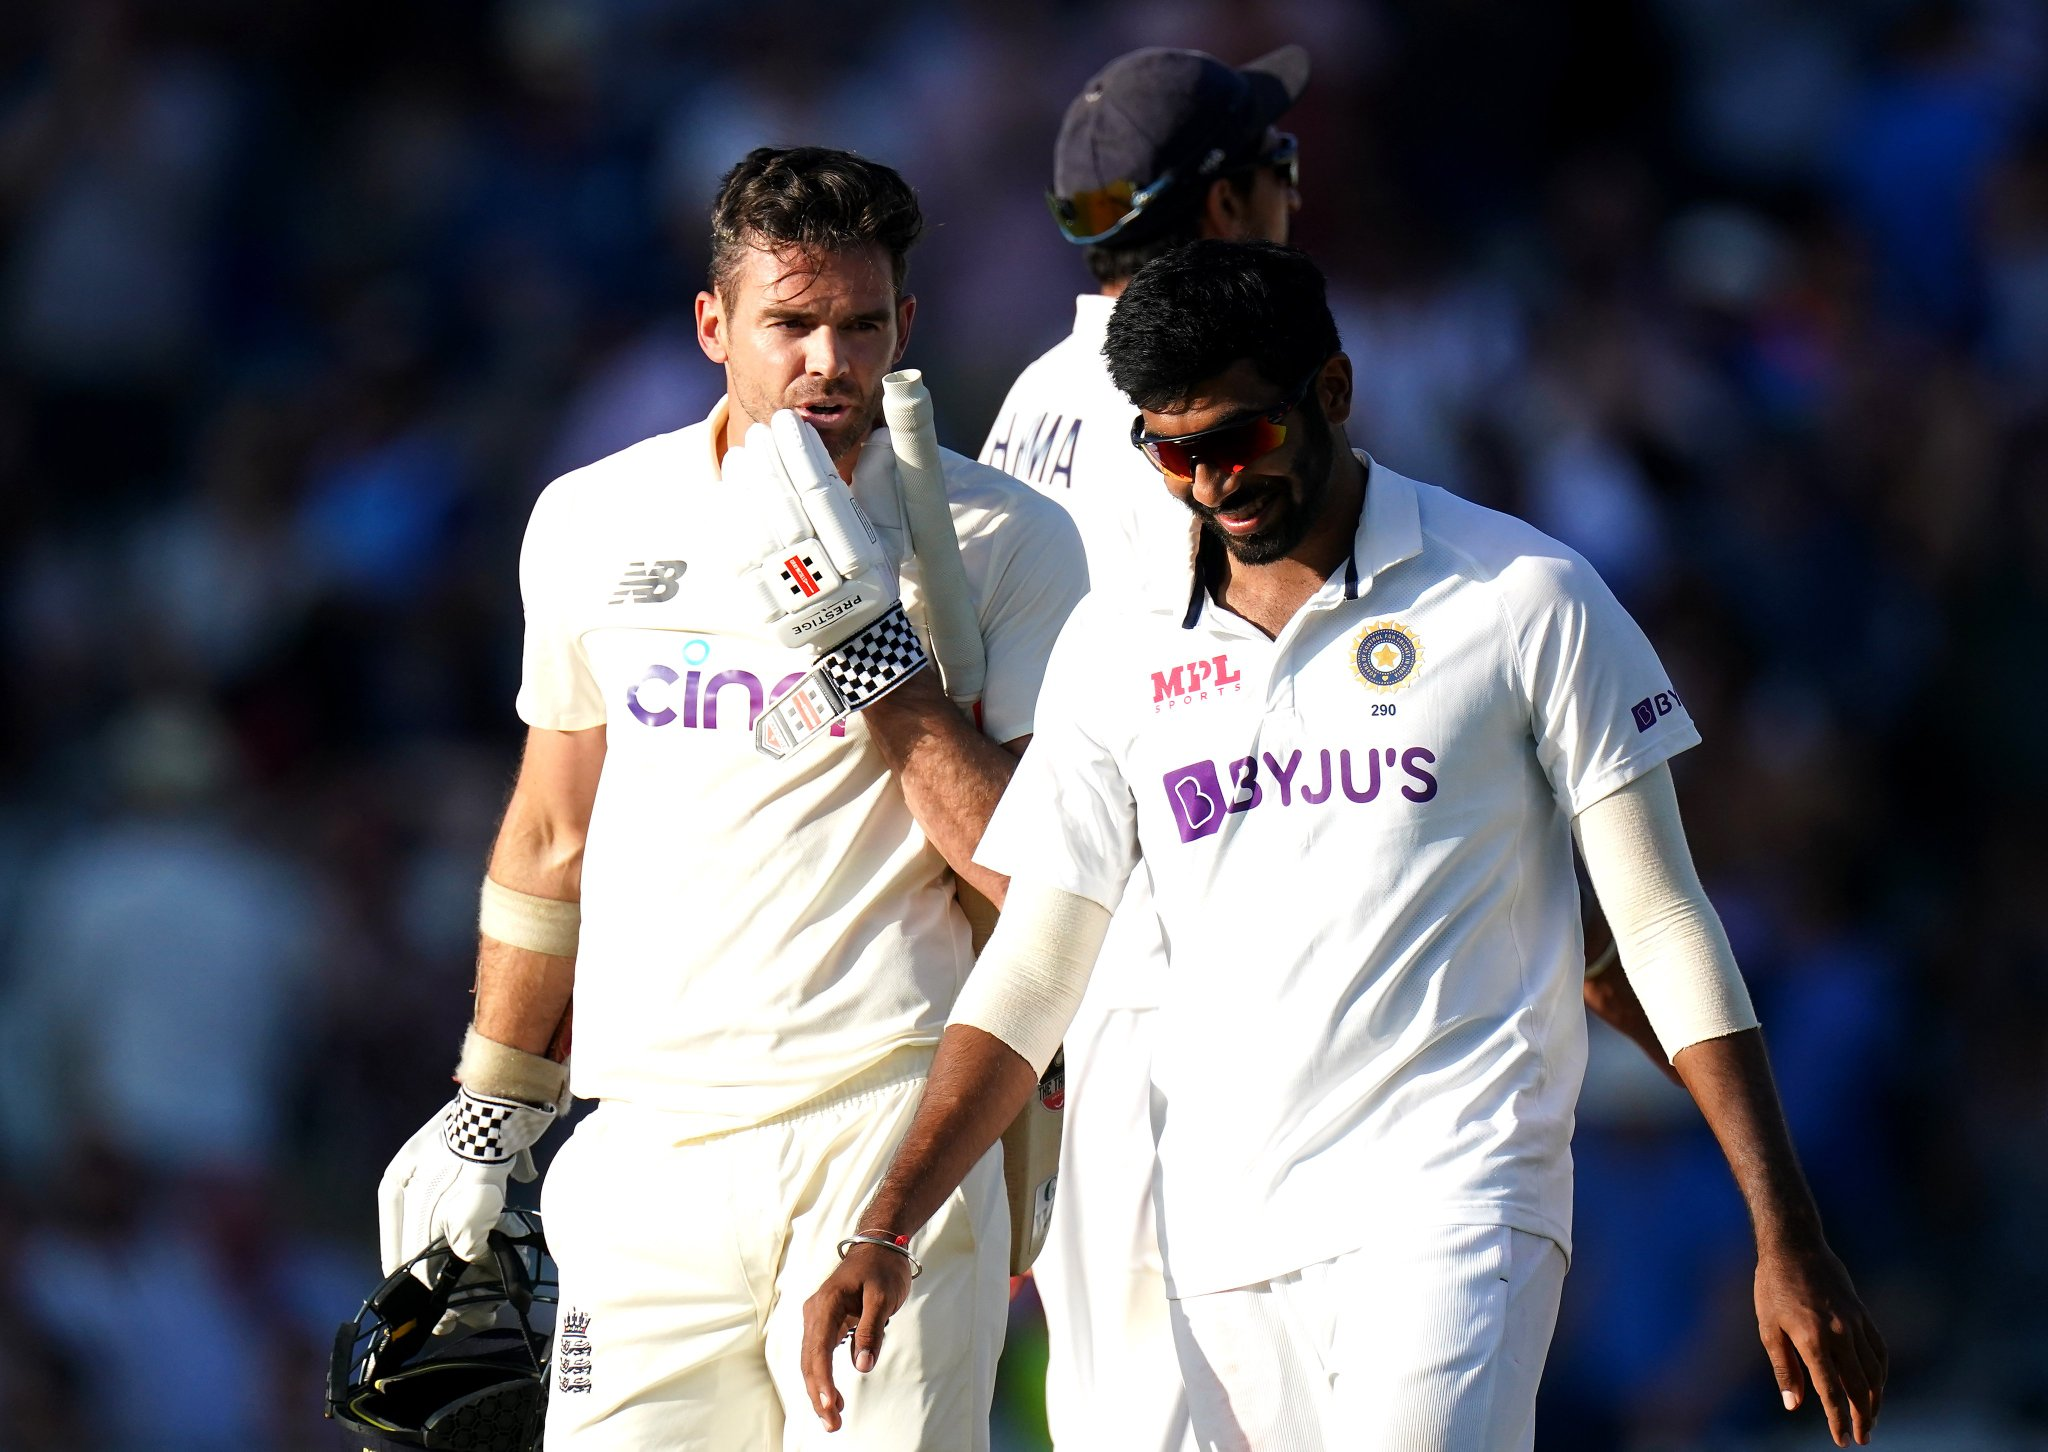 IND vs ENG: Jasprit Bumrah and James Anderson had a heated exchange at Lord's at the end of Day 3